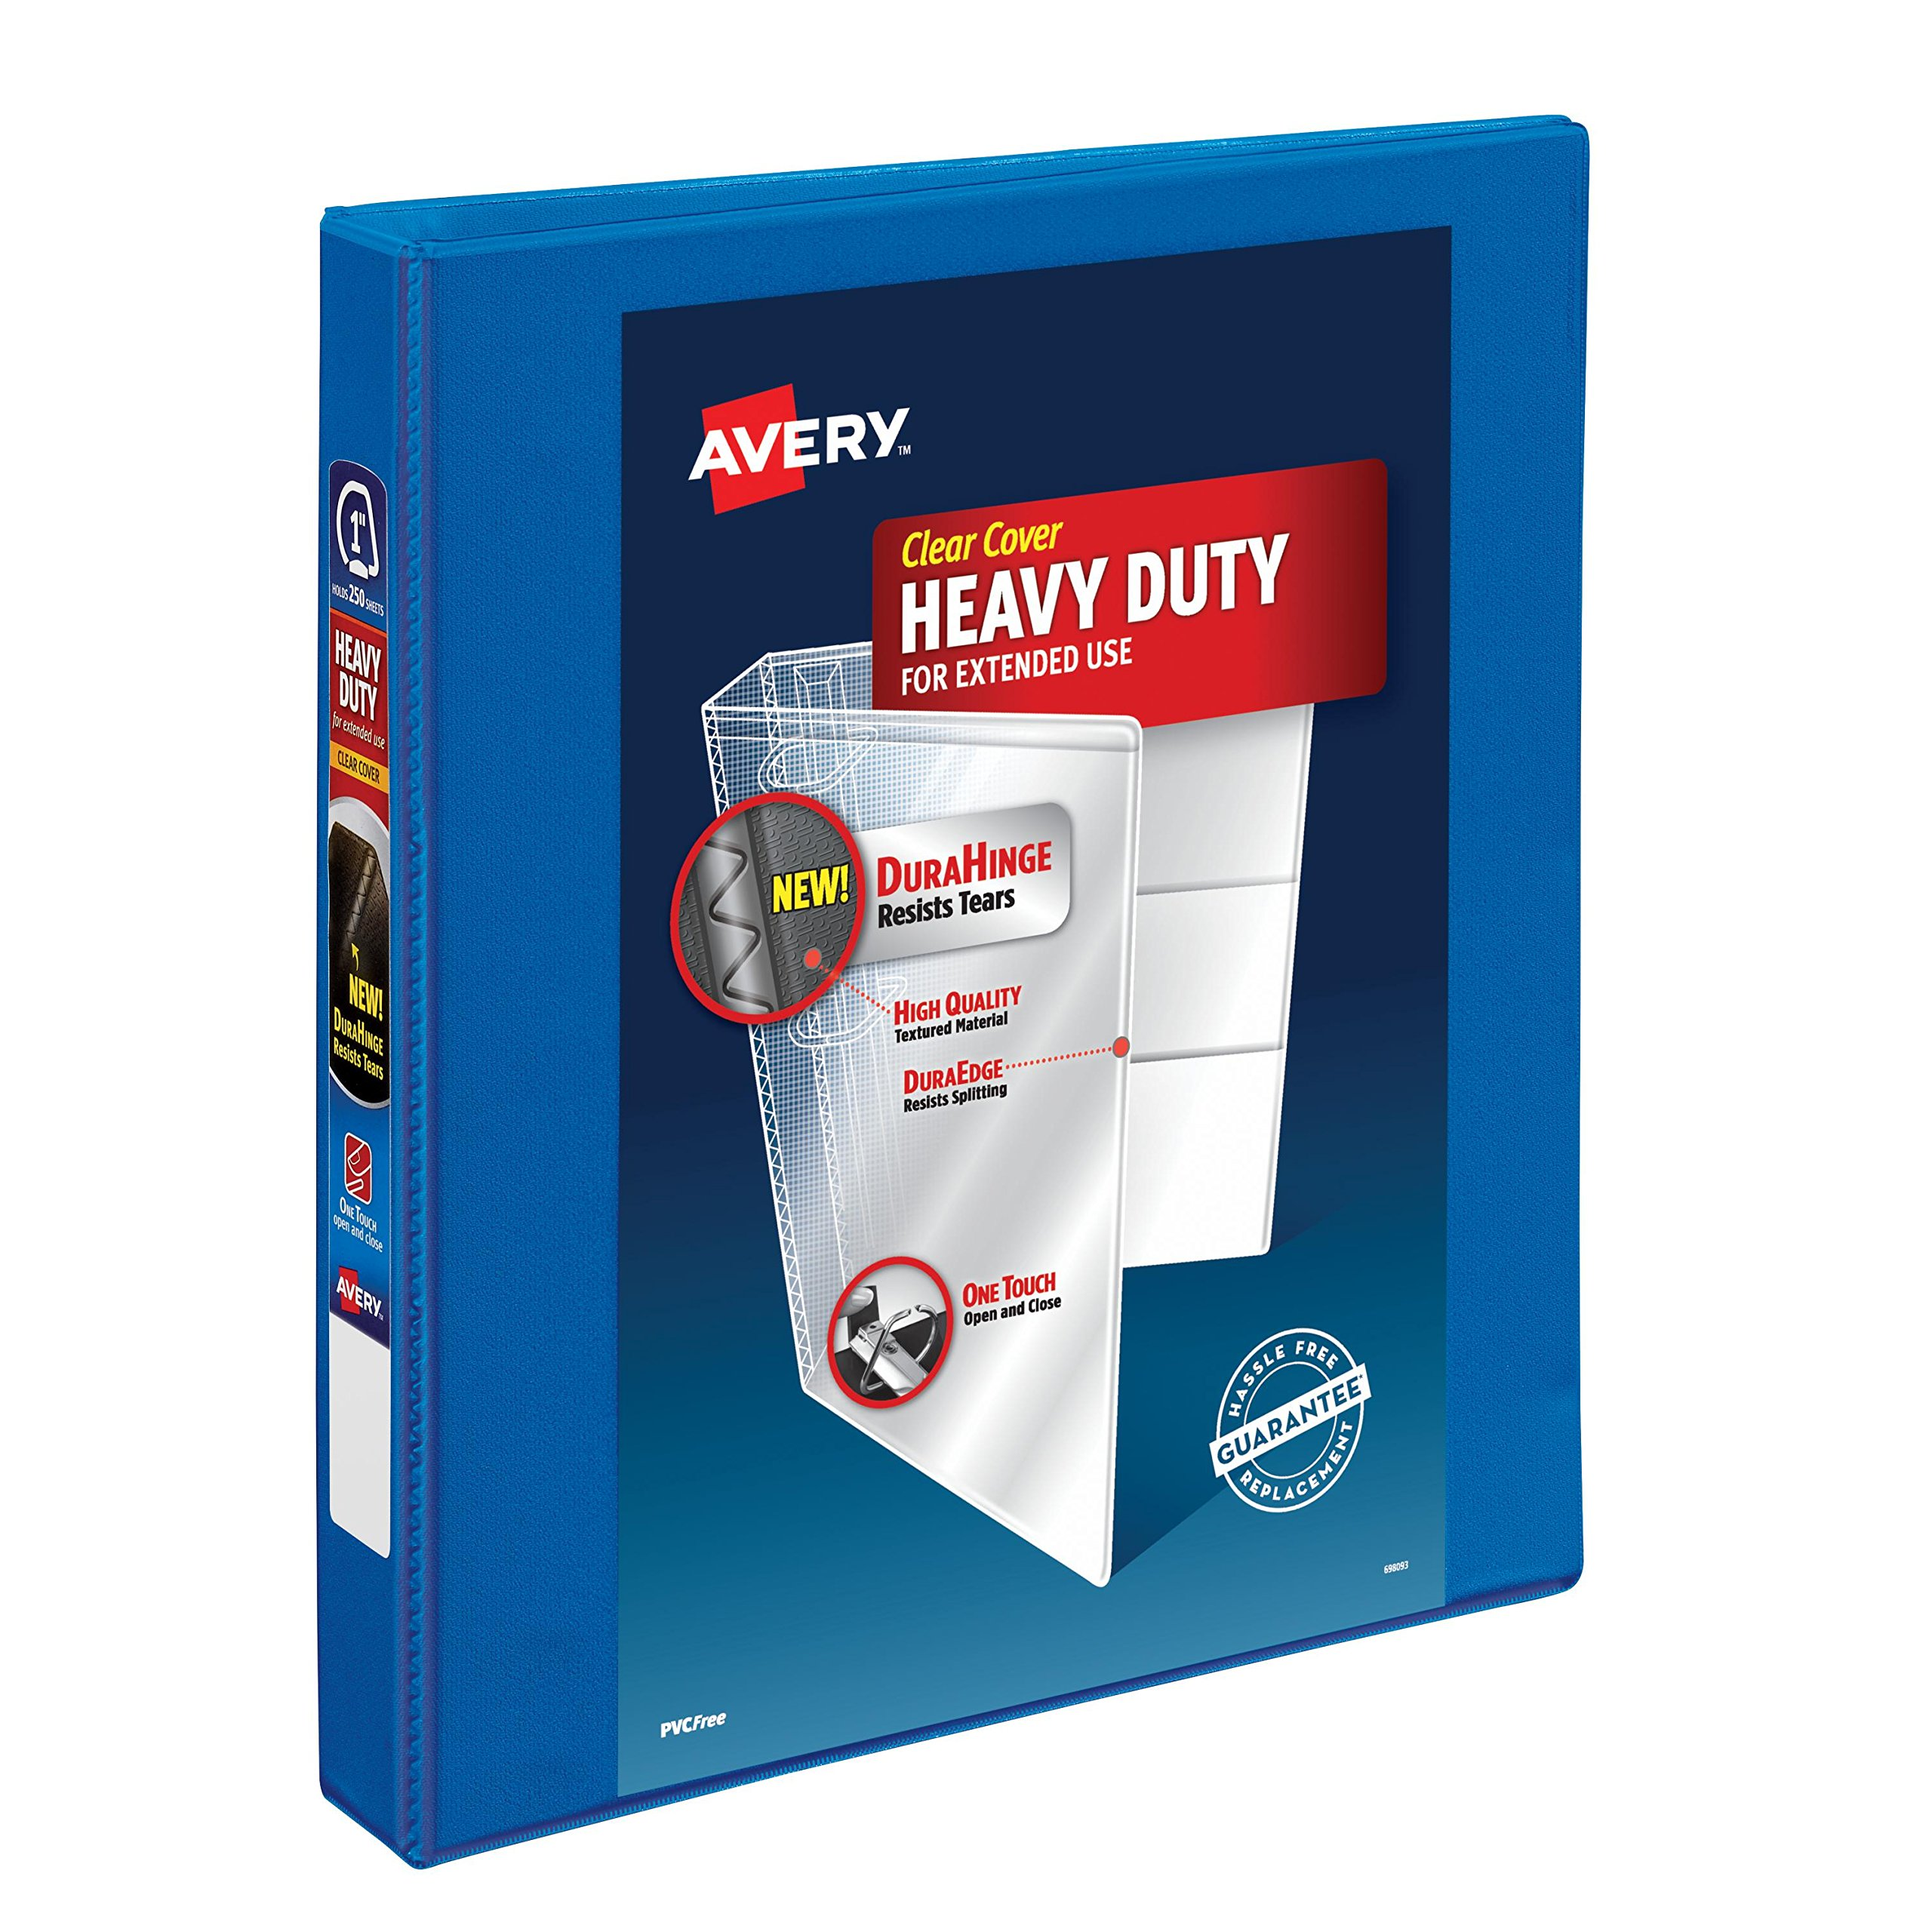 Avery Heavy-Duty View Binder, 1'' One Touch Slant Rings, 220-Sheet Capacity, DuraHinge, Blue (79720)